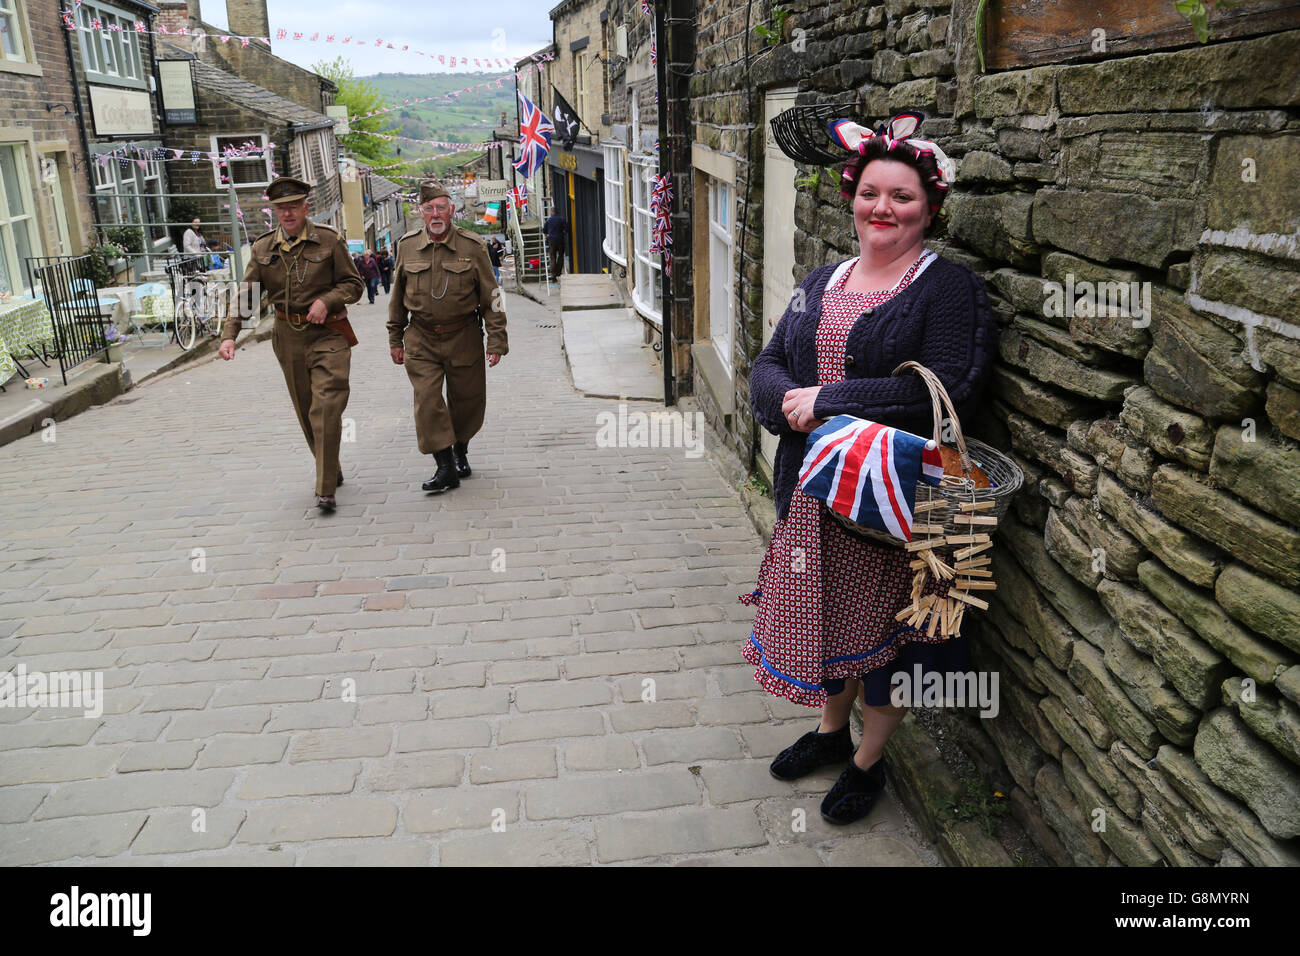 A woman dressed in costume smiles as two men dressed in home guard uniforms walk past during the annual 1940's event - Stock Photo